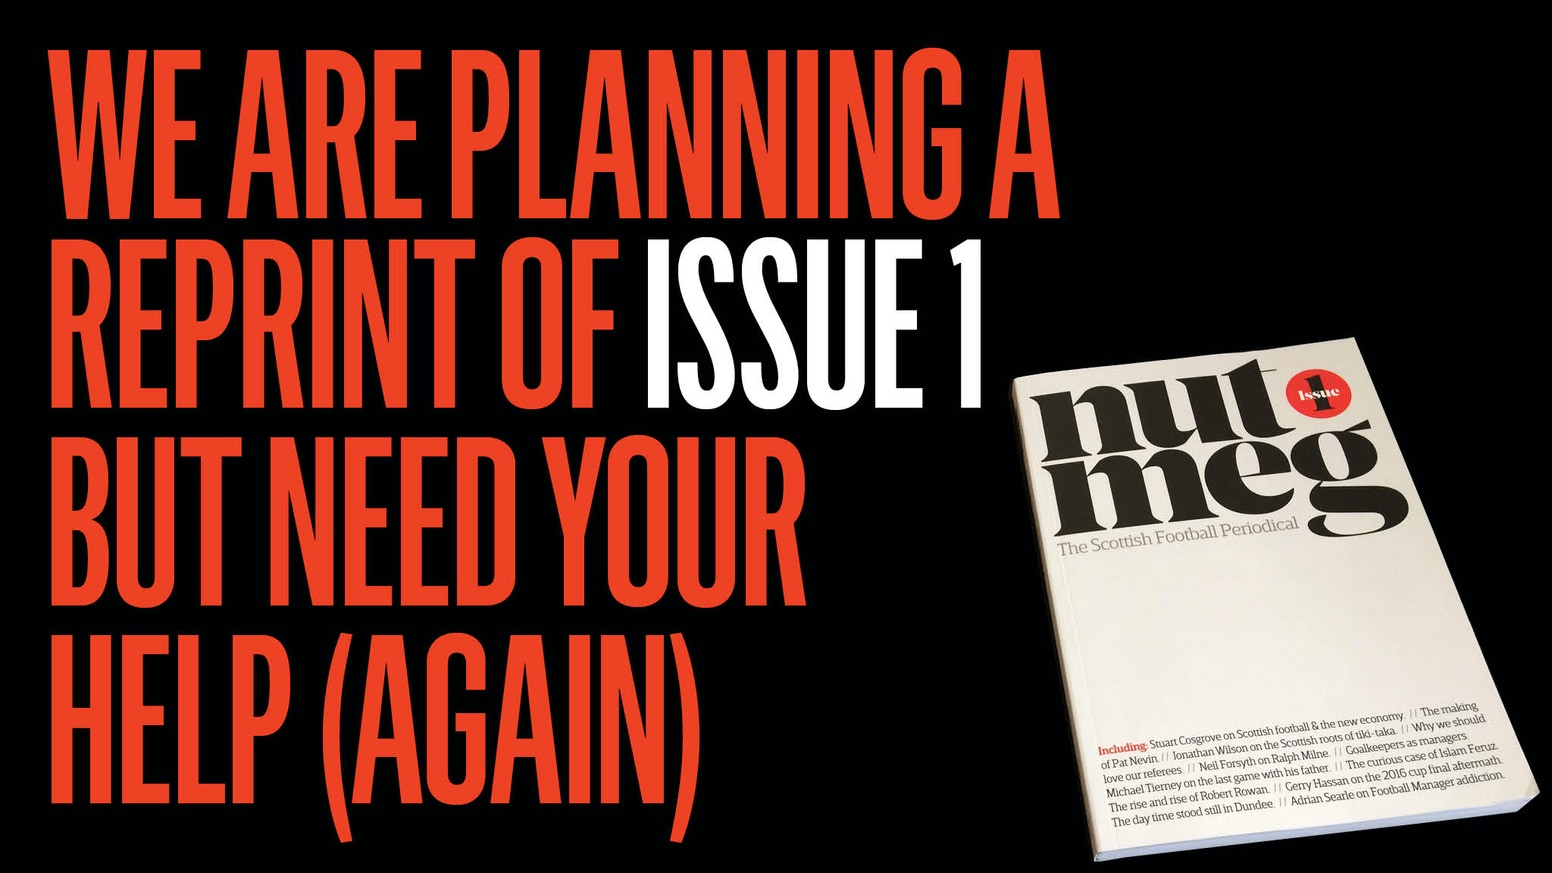 Thanks to everyone who pledged. We are now doing a reprint of Issue 1. We will also have some copies available via our website: www.nutmegmagazine.co.uk